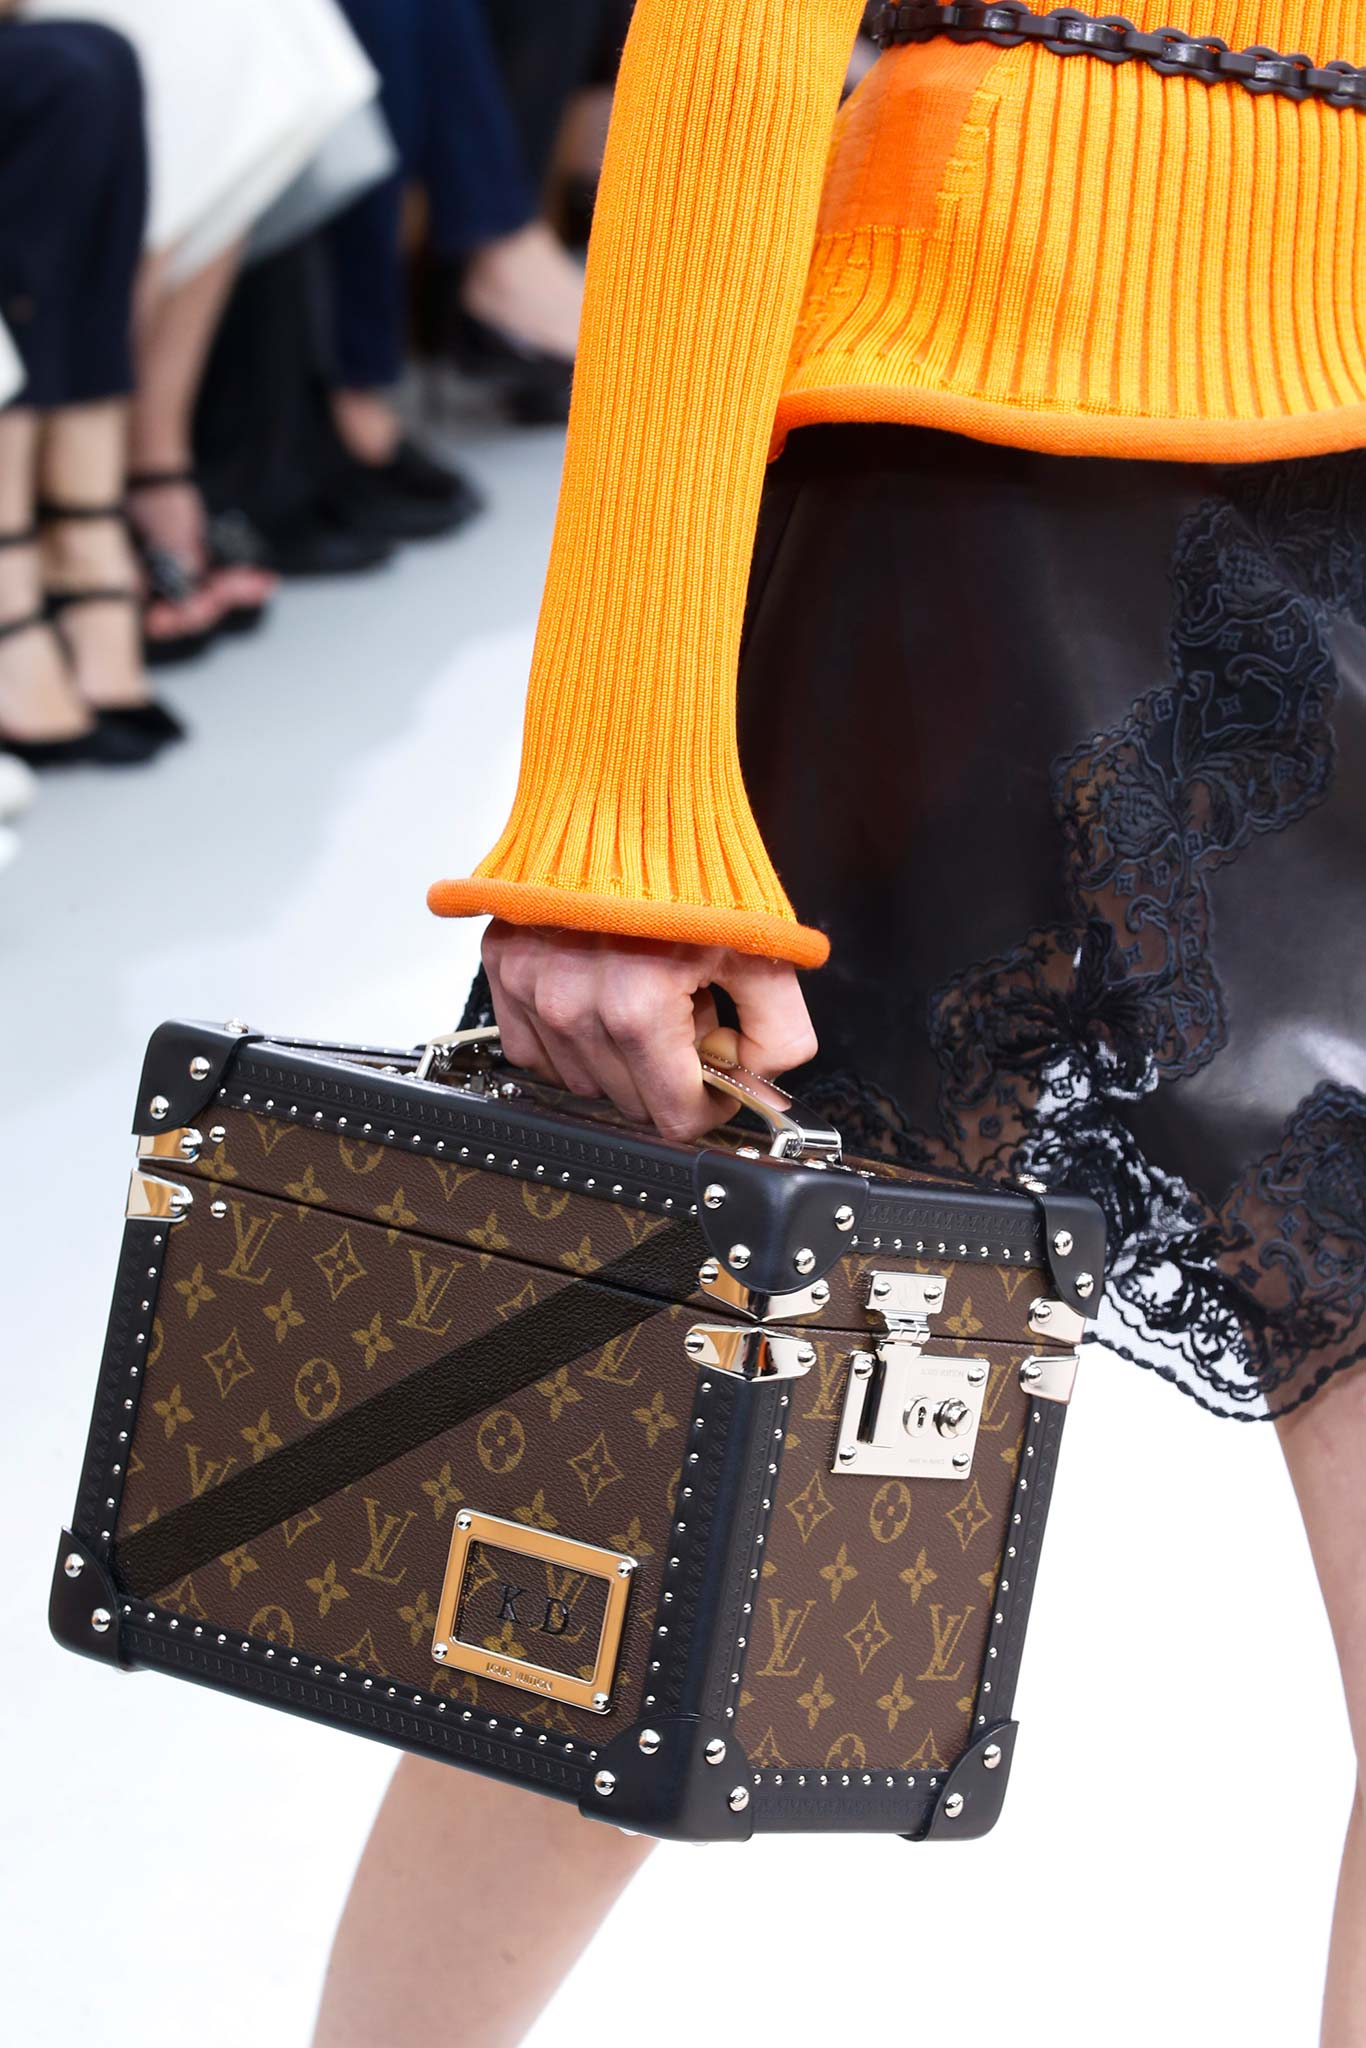 f913f7655d78 Louis Vuitton Fall Winter 2015 Runway Bag Collection featuring Mini ...